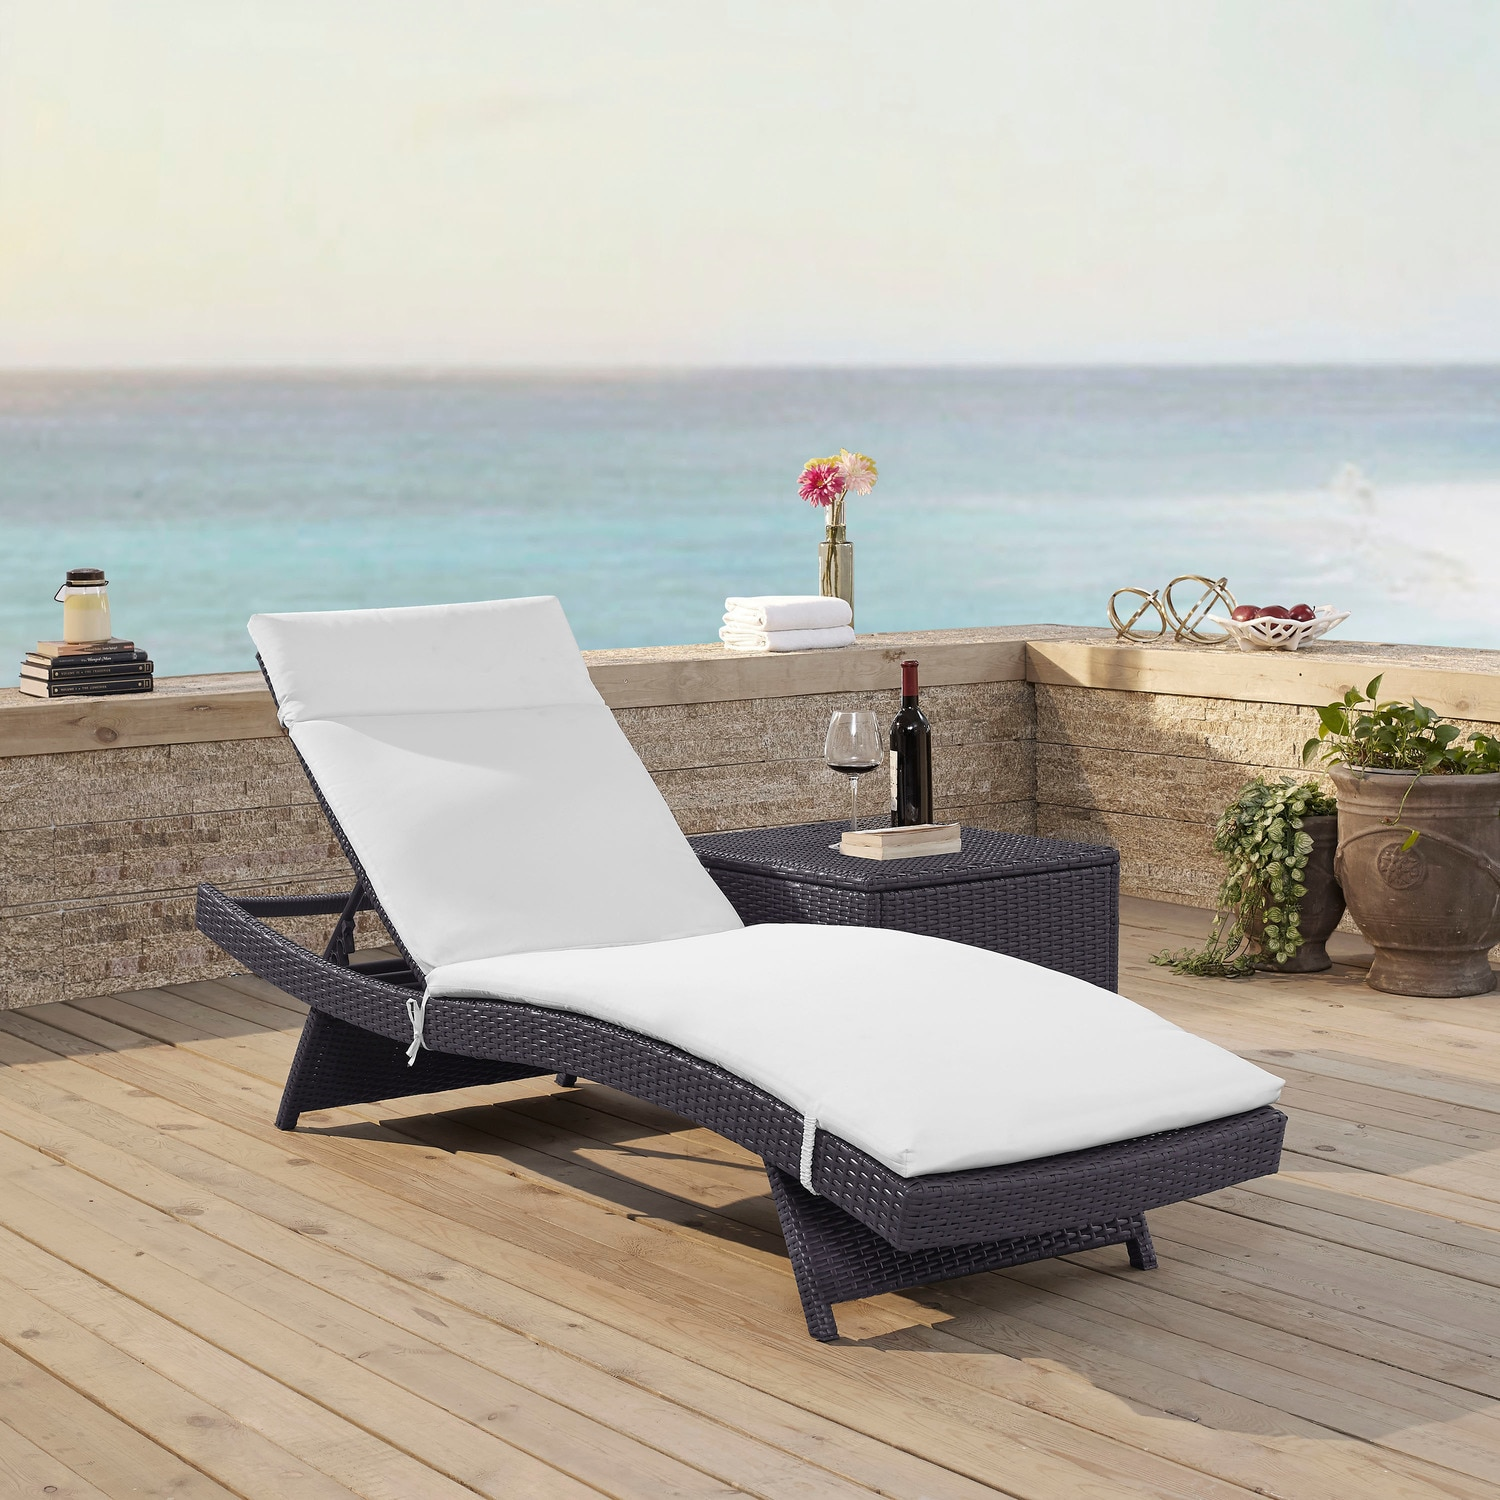 Outdoor Furniture - Isla Outdoor Chaise Lounge